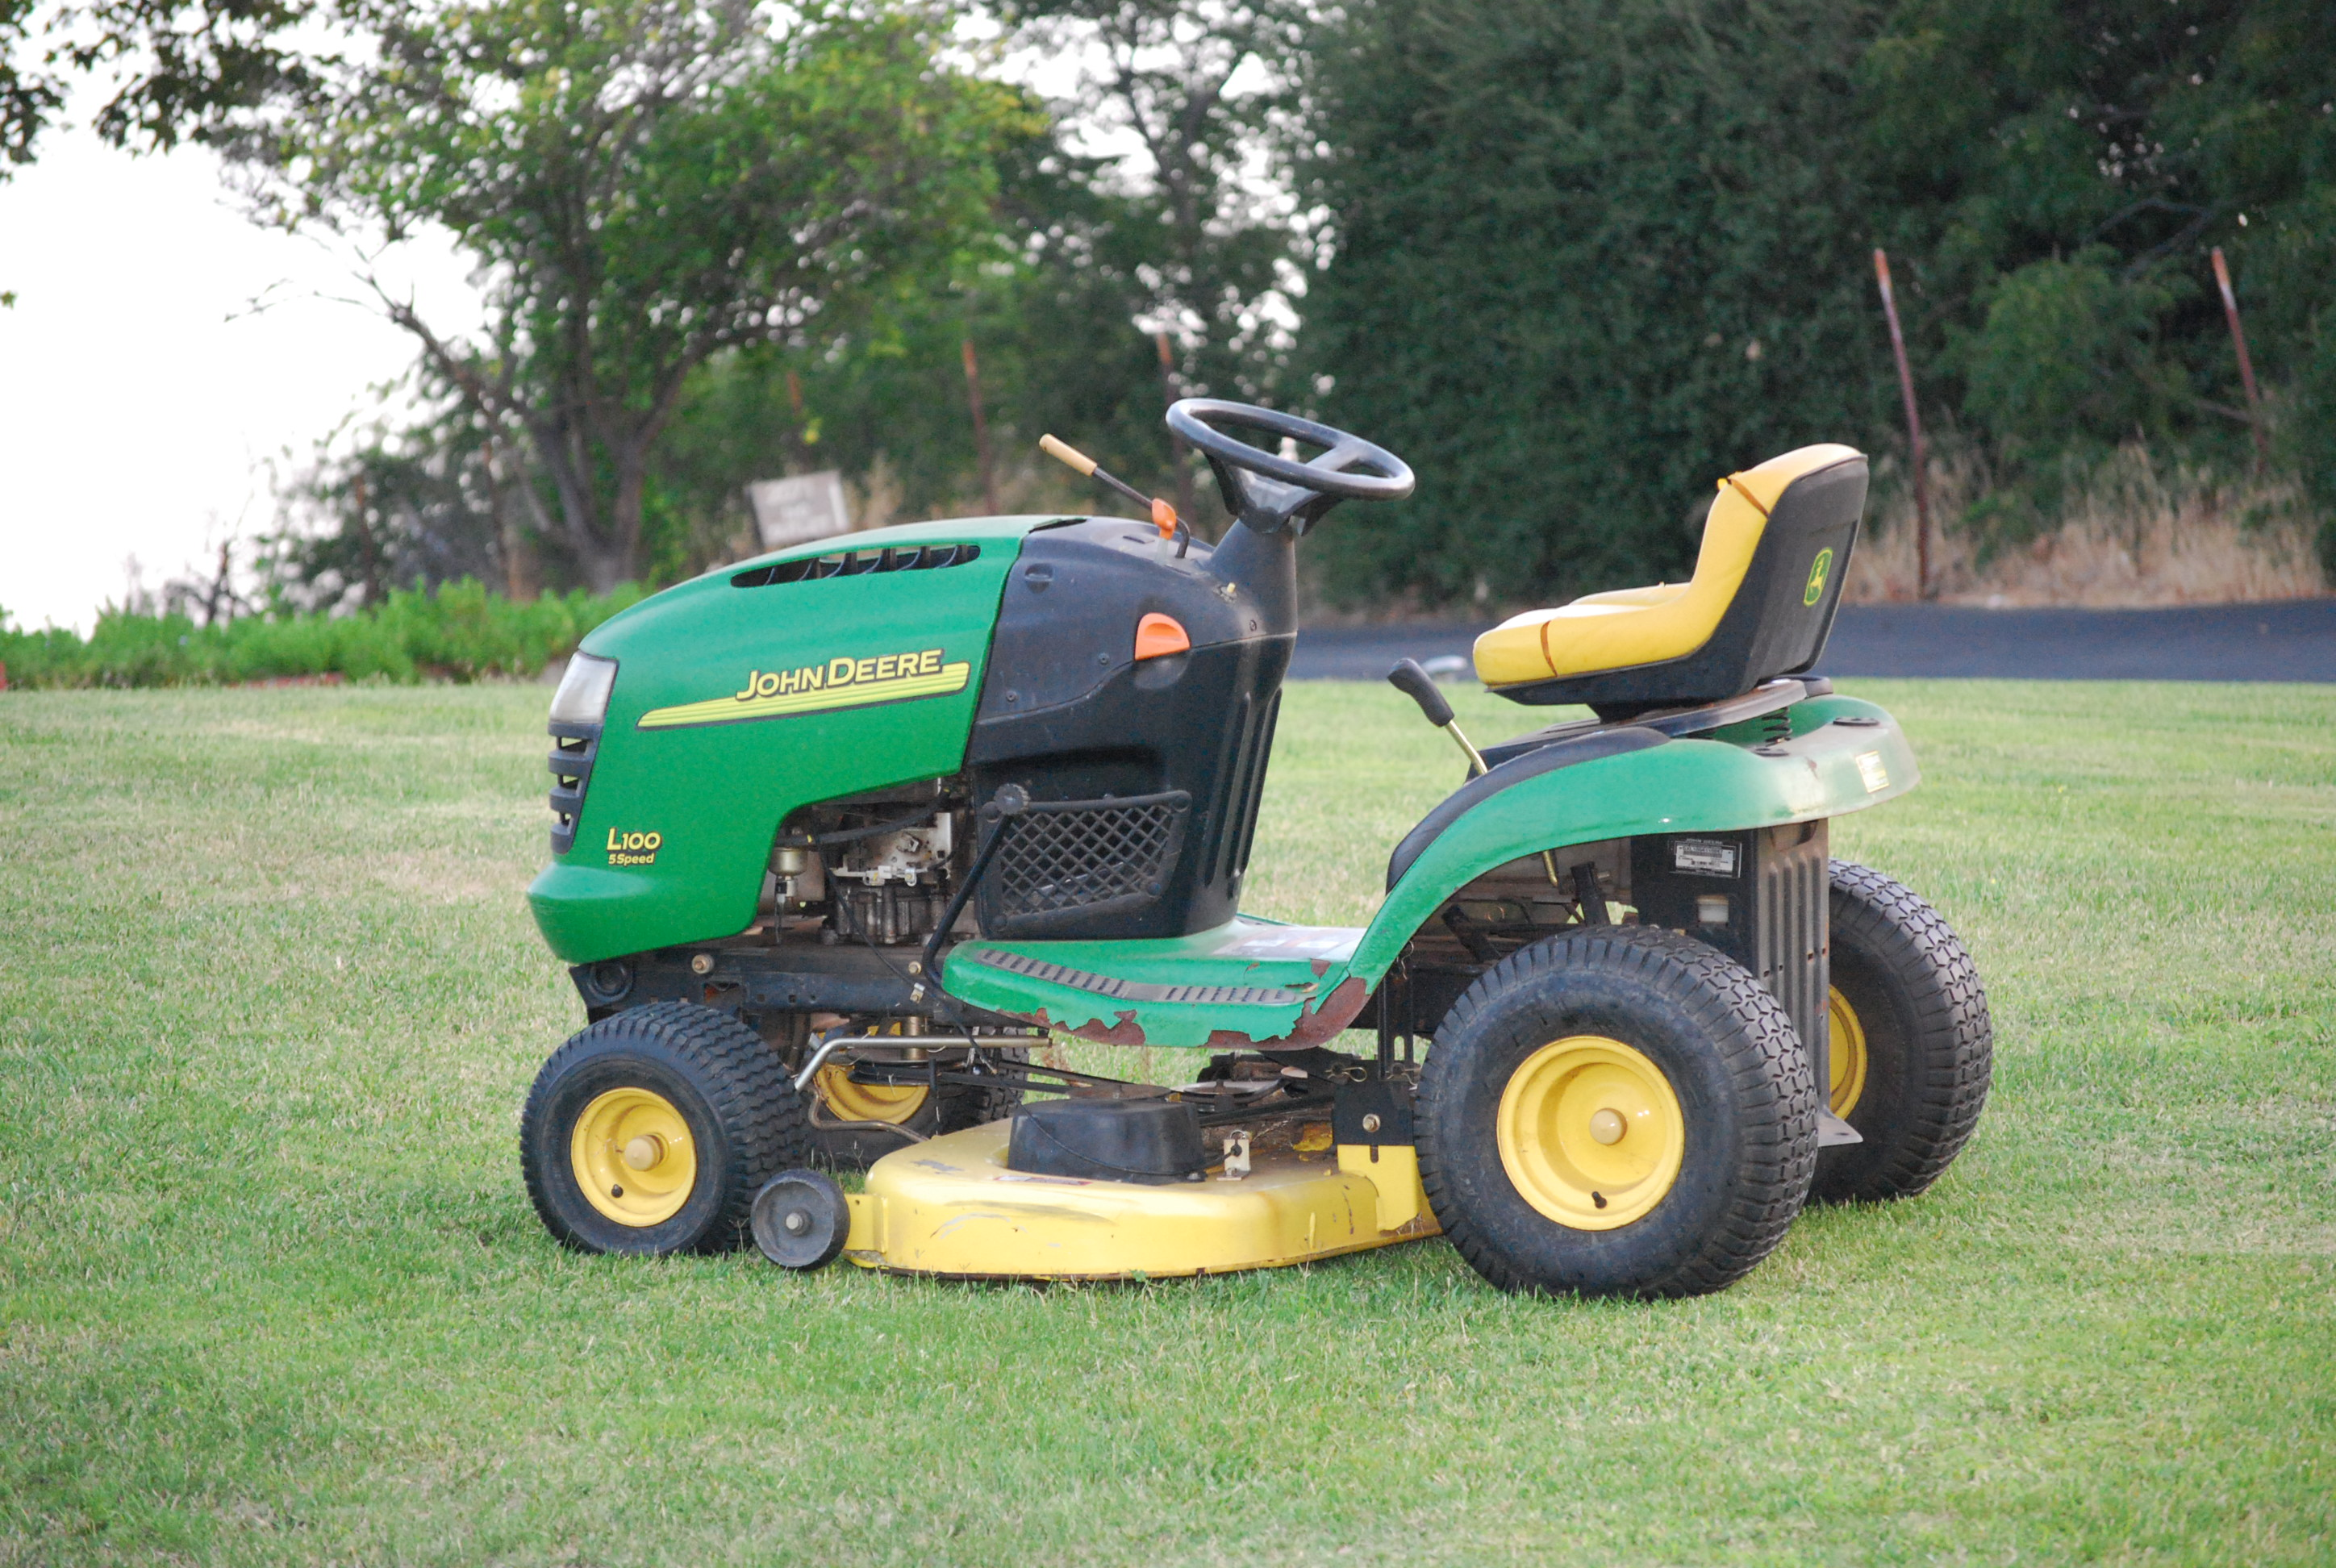 Forbes Tech Lawn Tractors